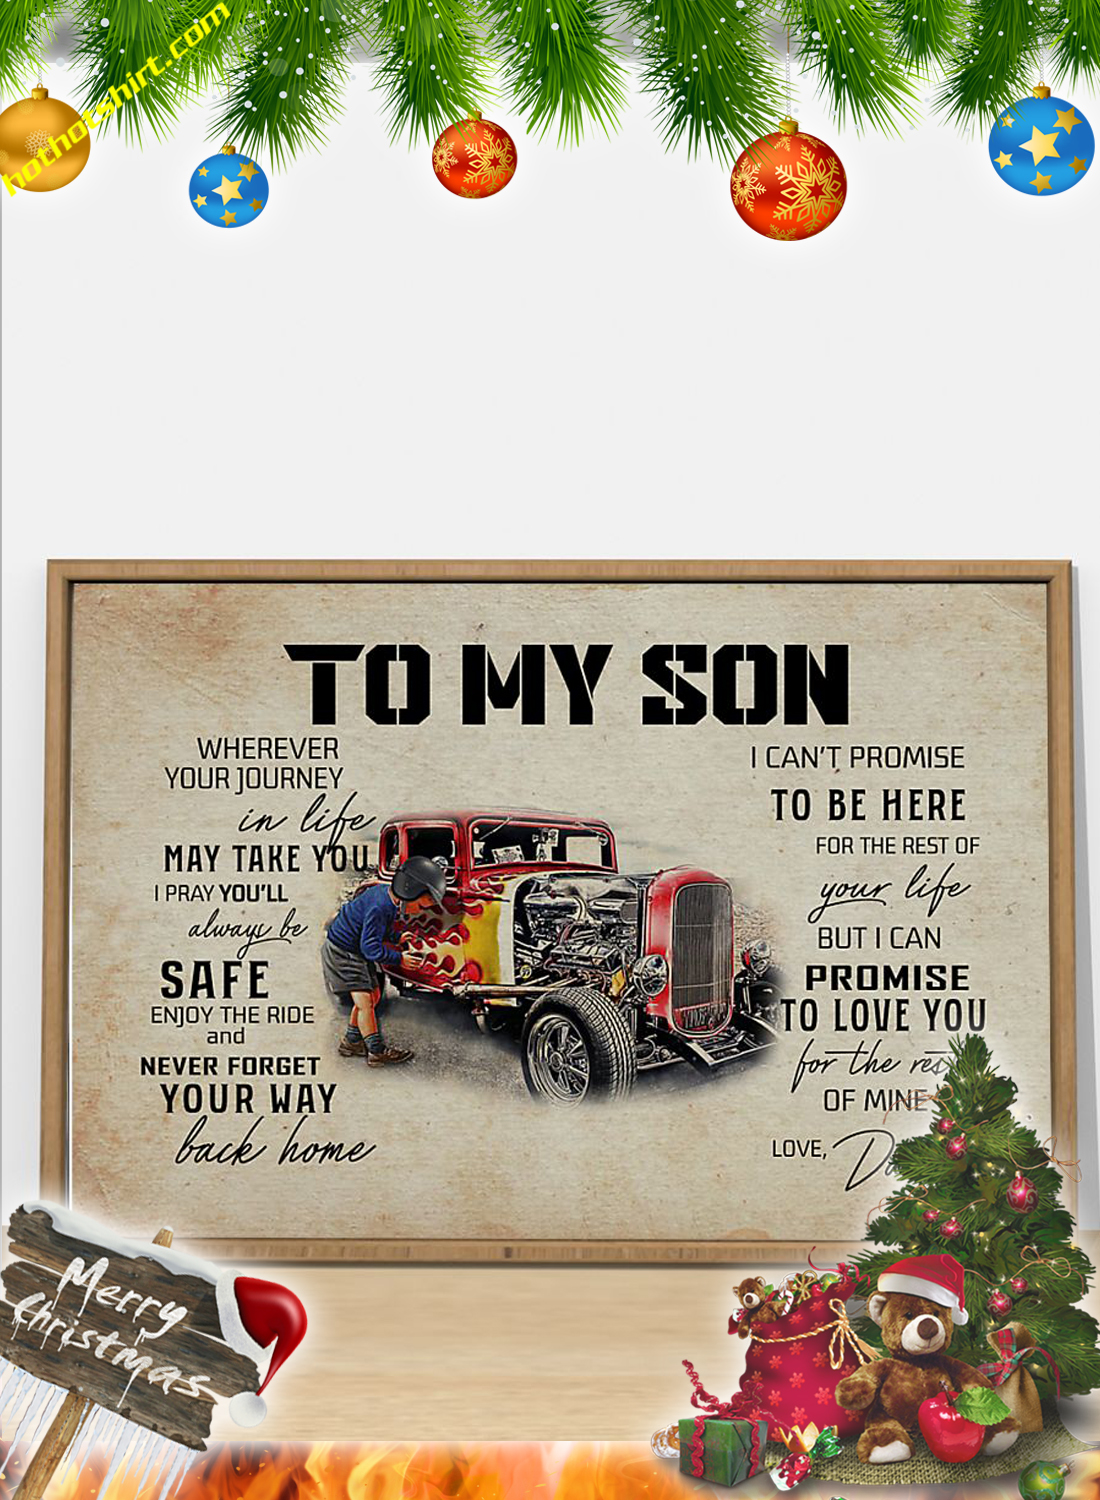 Hot rod To my son dad poster 3